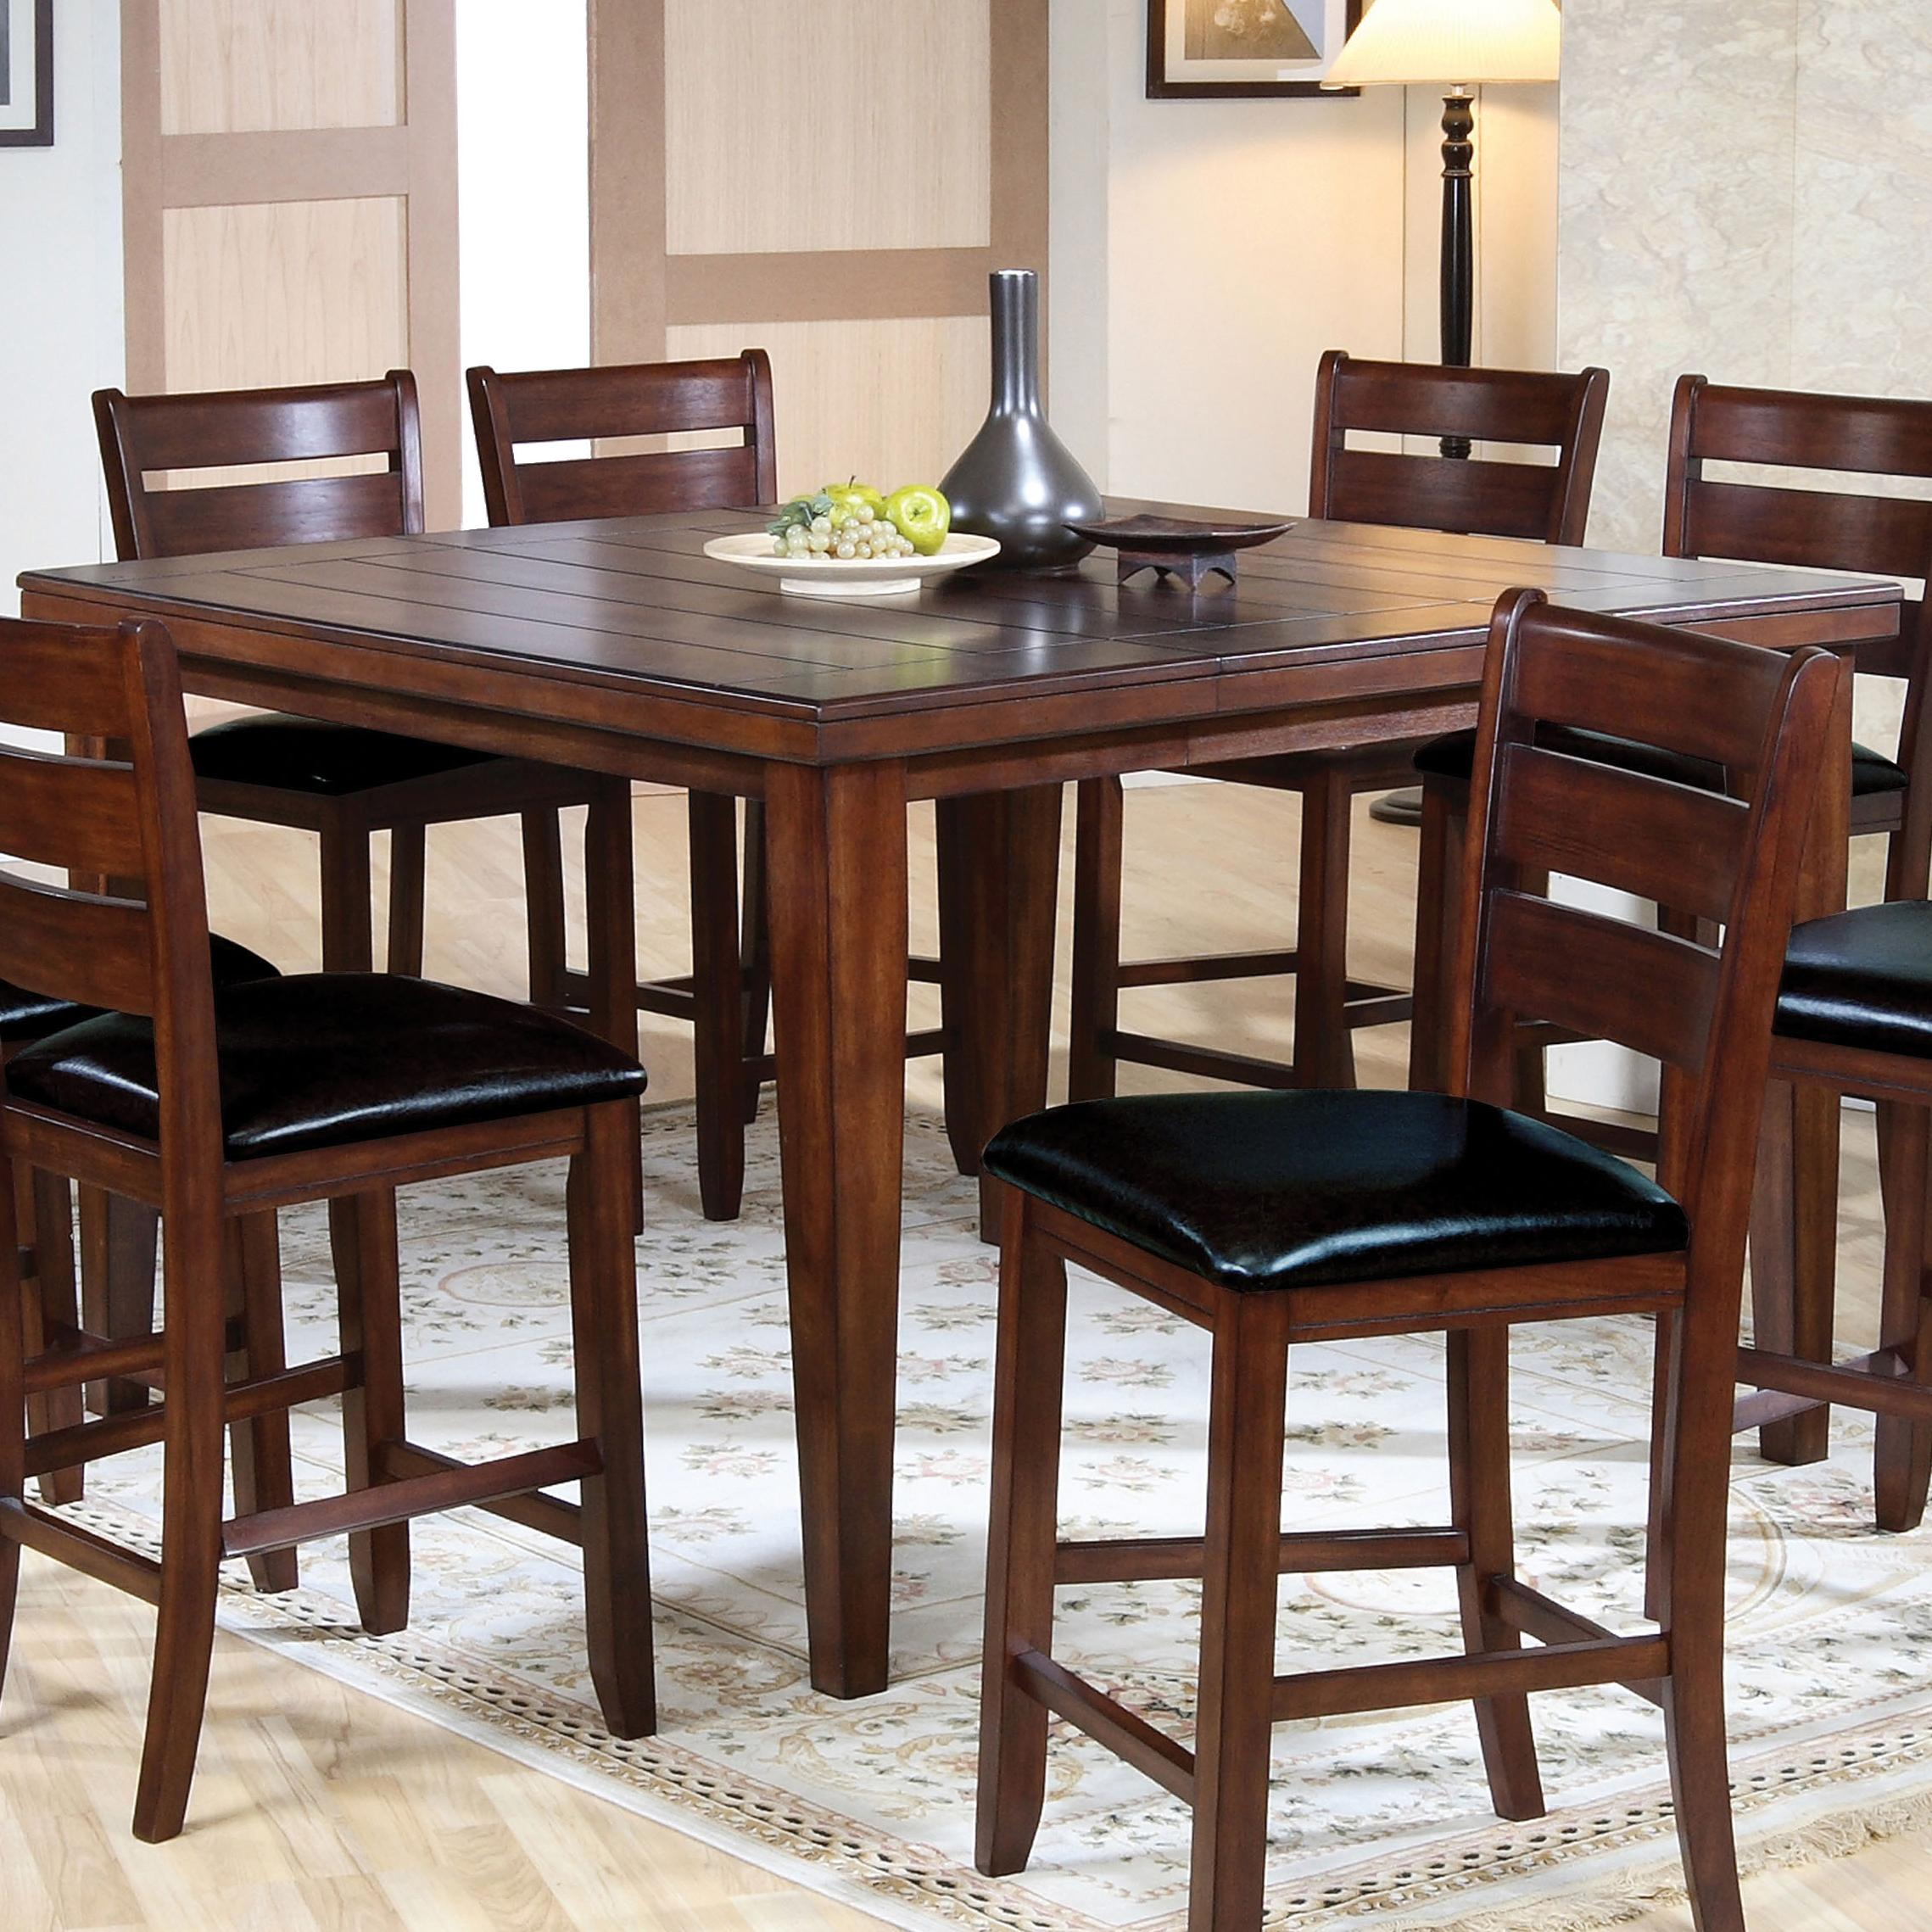 00680 Counter Height Table by Acme Furniture at Corner Furniture